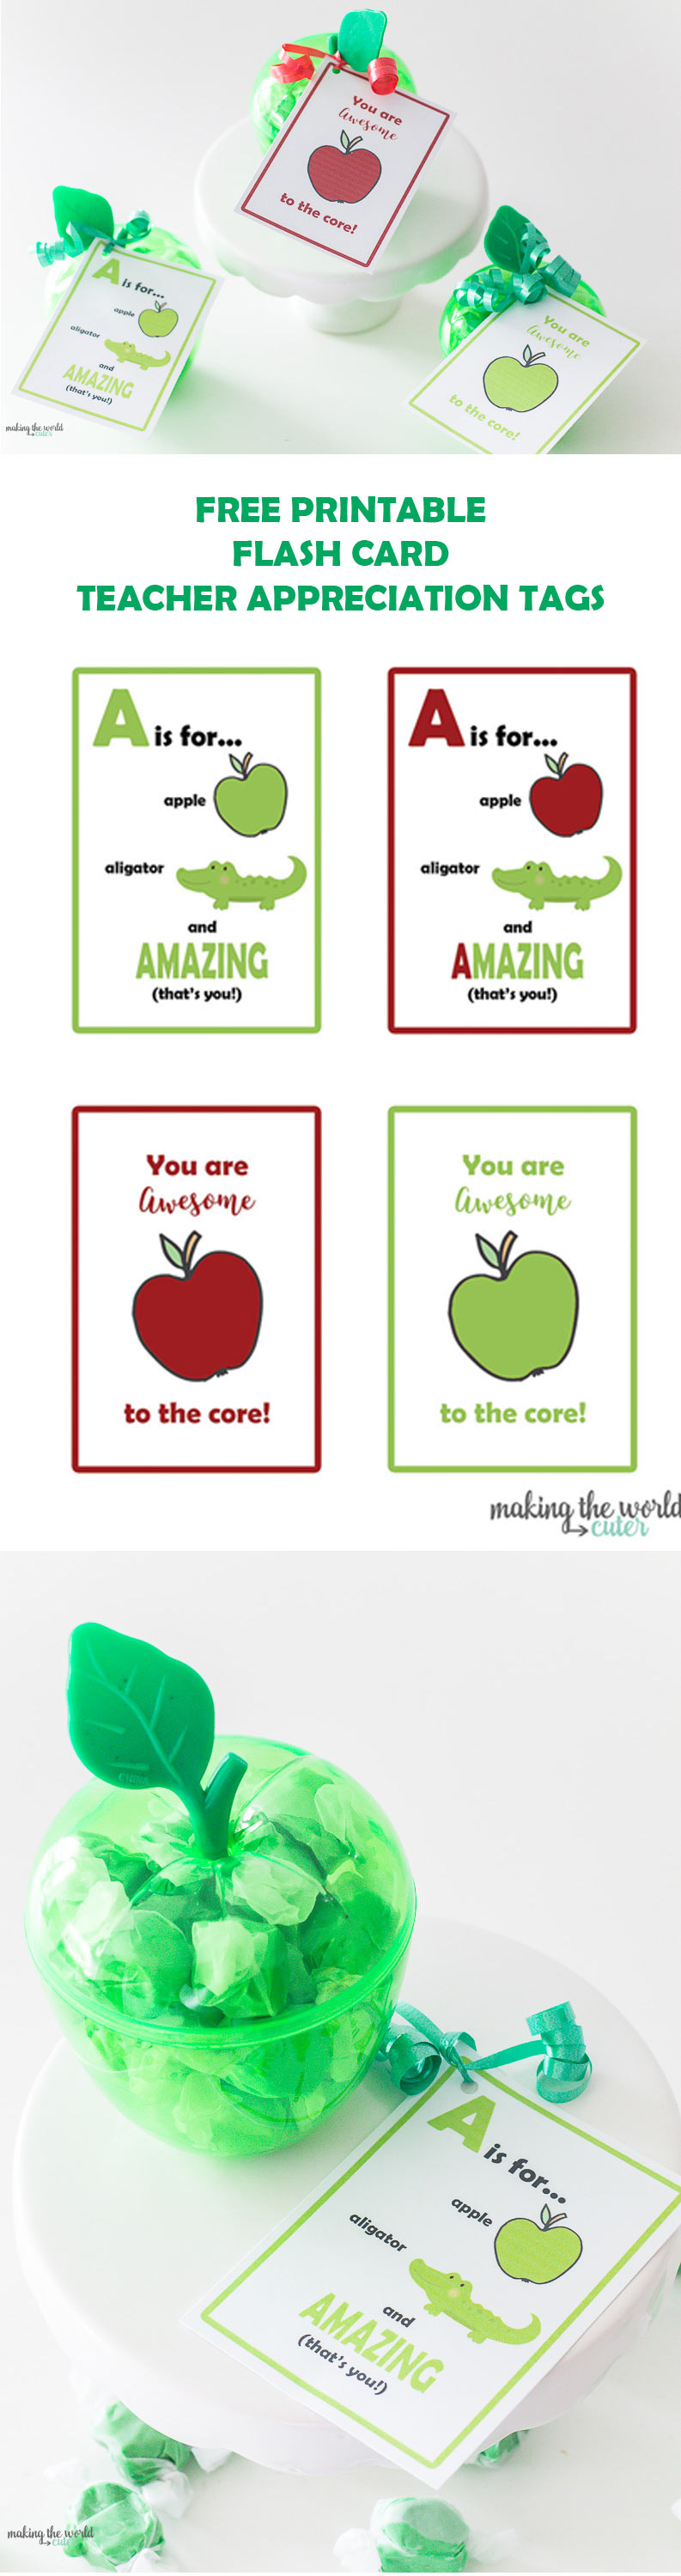 photograph relating to Free Printable Teacher Appreciation Tags named Apple Instructor Appreciation Recommendations and Totally free Printable Present Tags